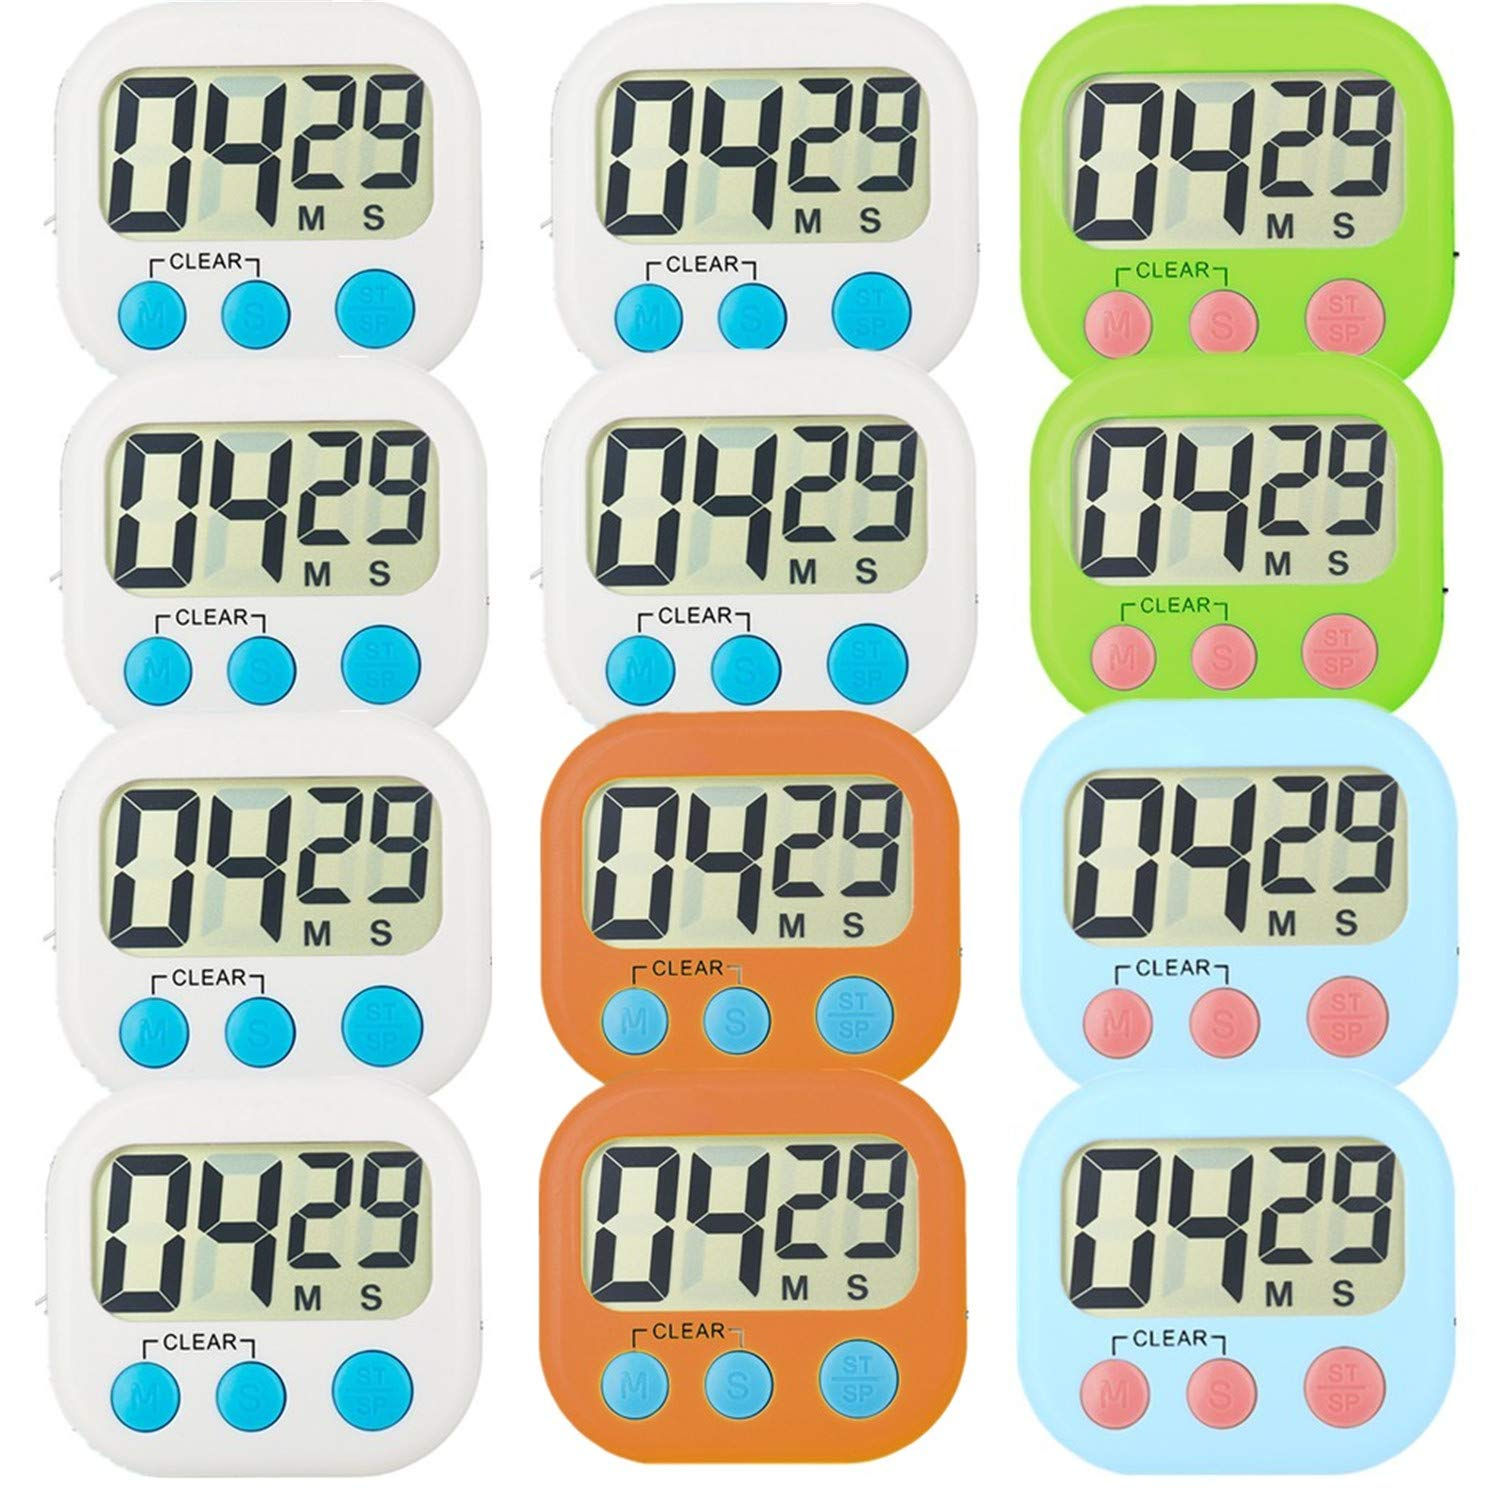 Kitchen timers clipart clip transparent download Kitchen Timer 12 Pack Small Digital Electronic Loud Alarm, Magnetic  Backing, ON/OFF Switch, Minute Second Countdown, White, Green, Blue and  Orange (12 ... clip transparent download